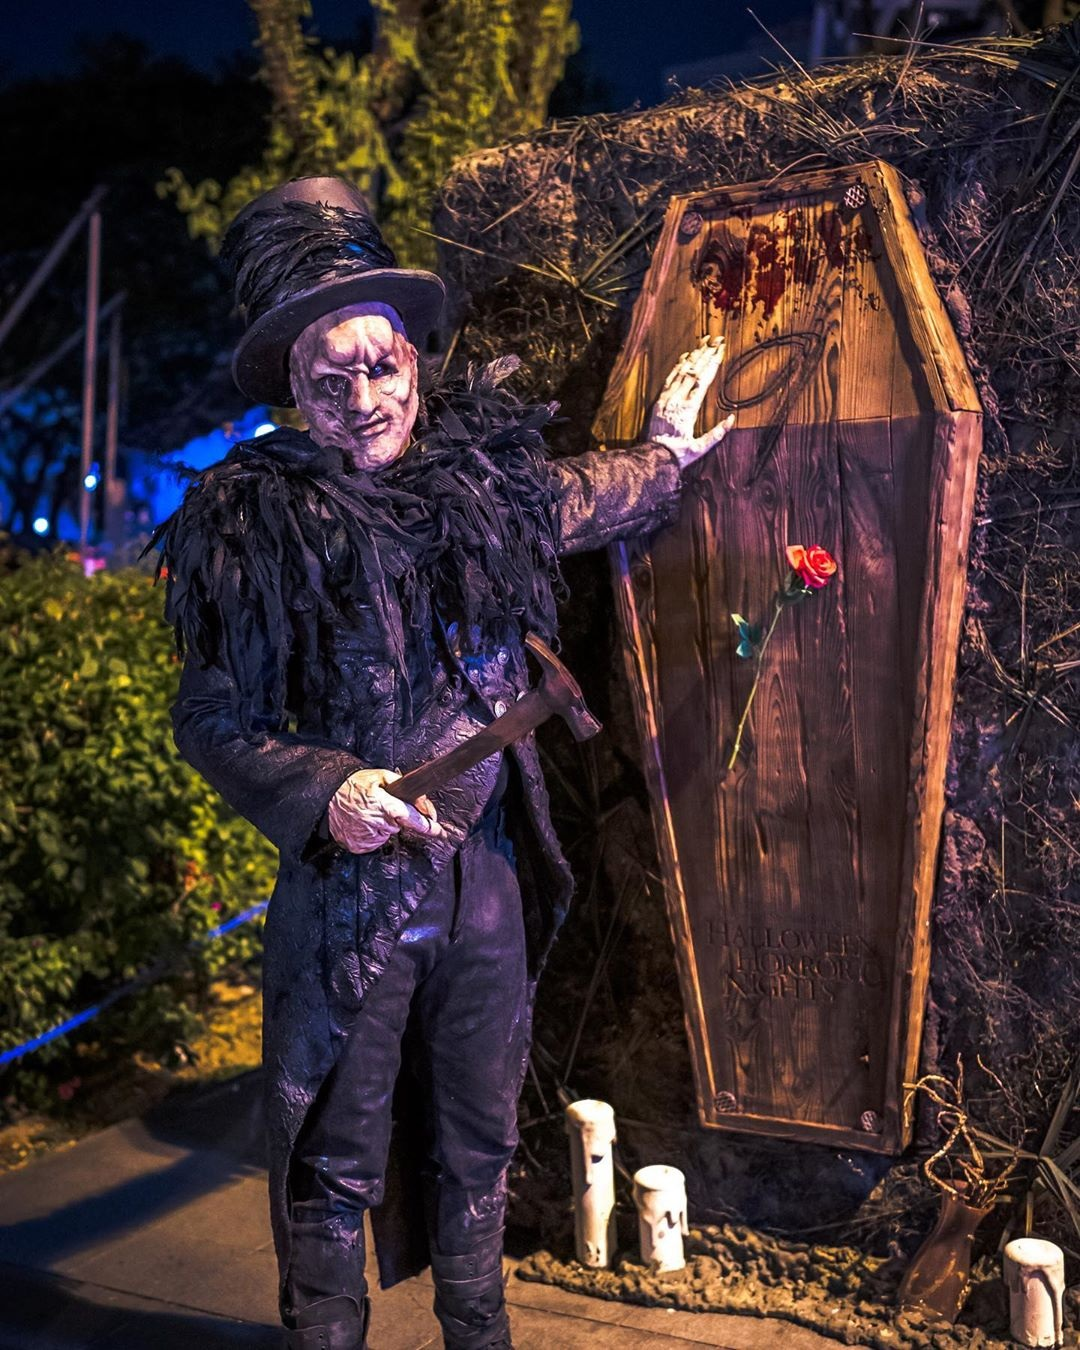 things to do october 2019 halloween horror night